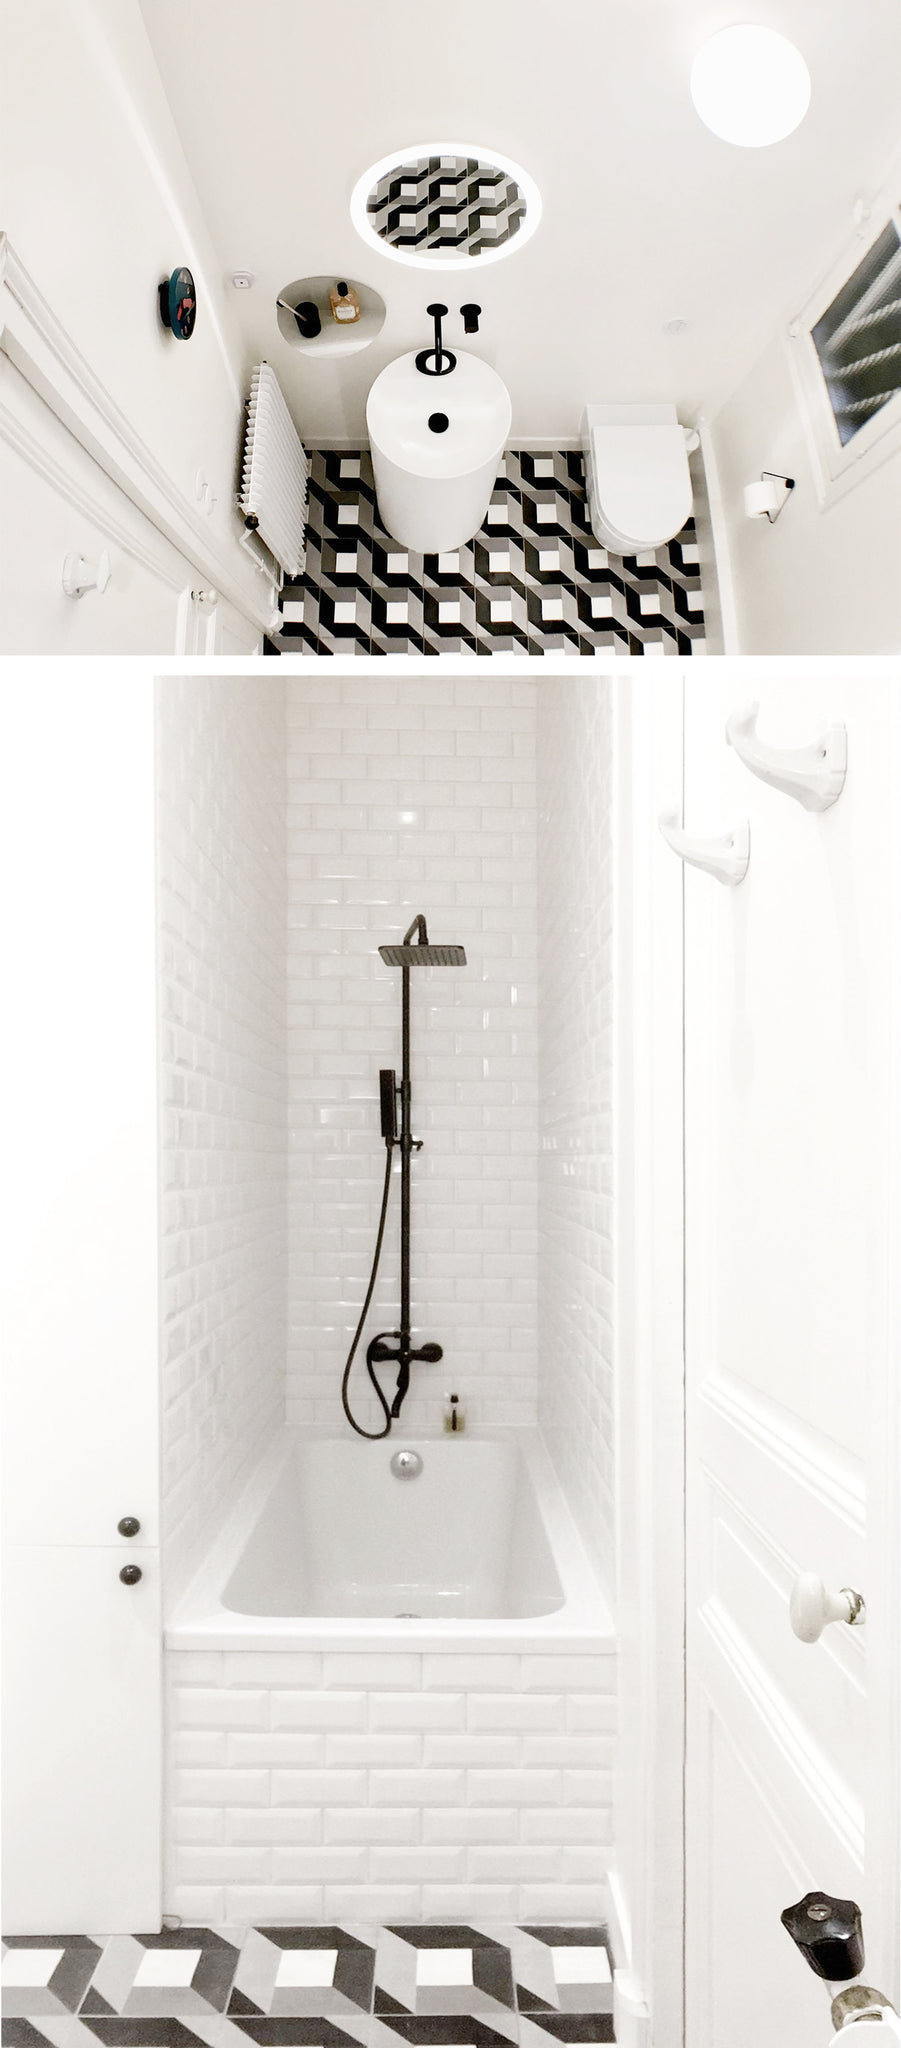 Black and white bathroom with geometric floor tiles and metro tiles in shower area